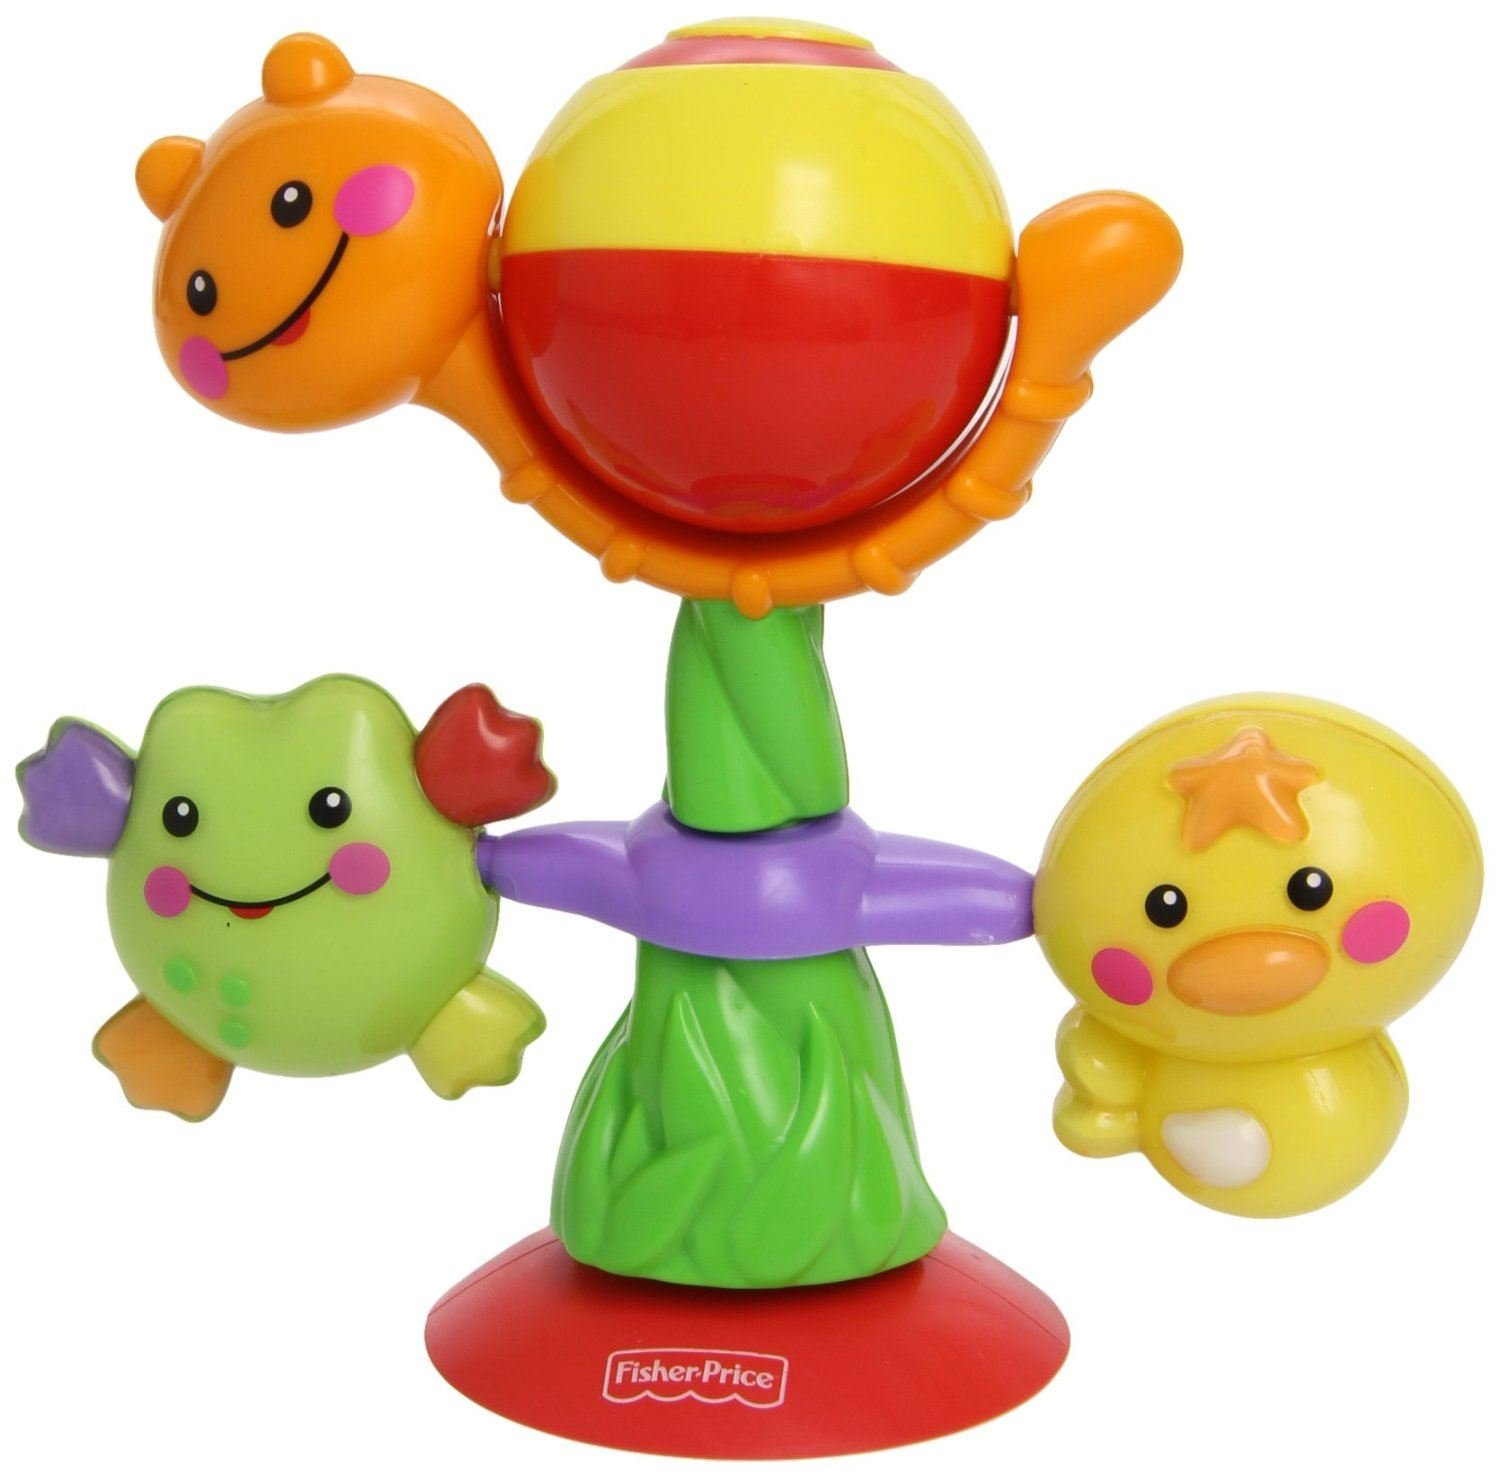 Amazon Fisher Price Spin N Play Suction Toy Discontinued by